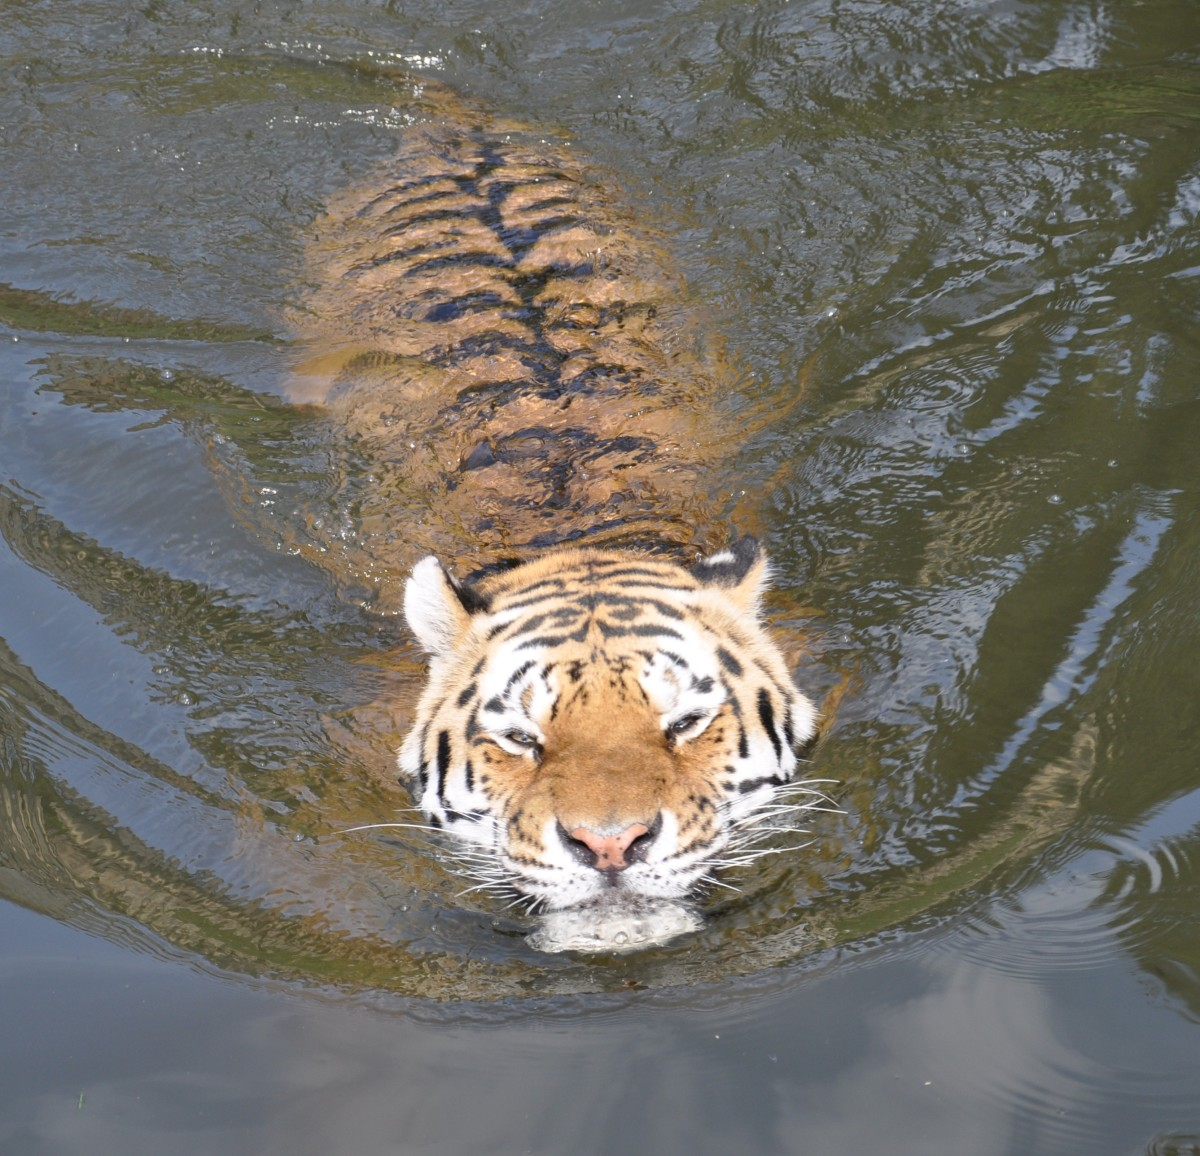 Siberian tiger swimming at Wuppertal Zoo in Germany